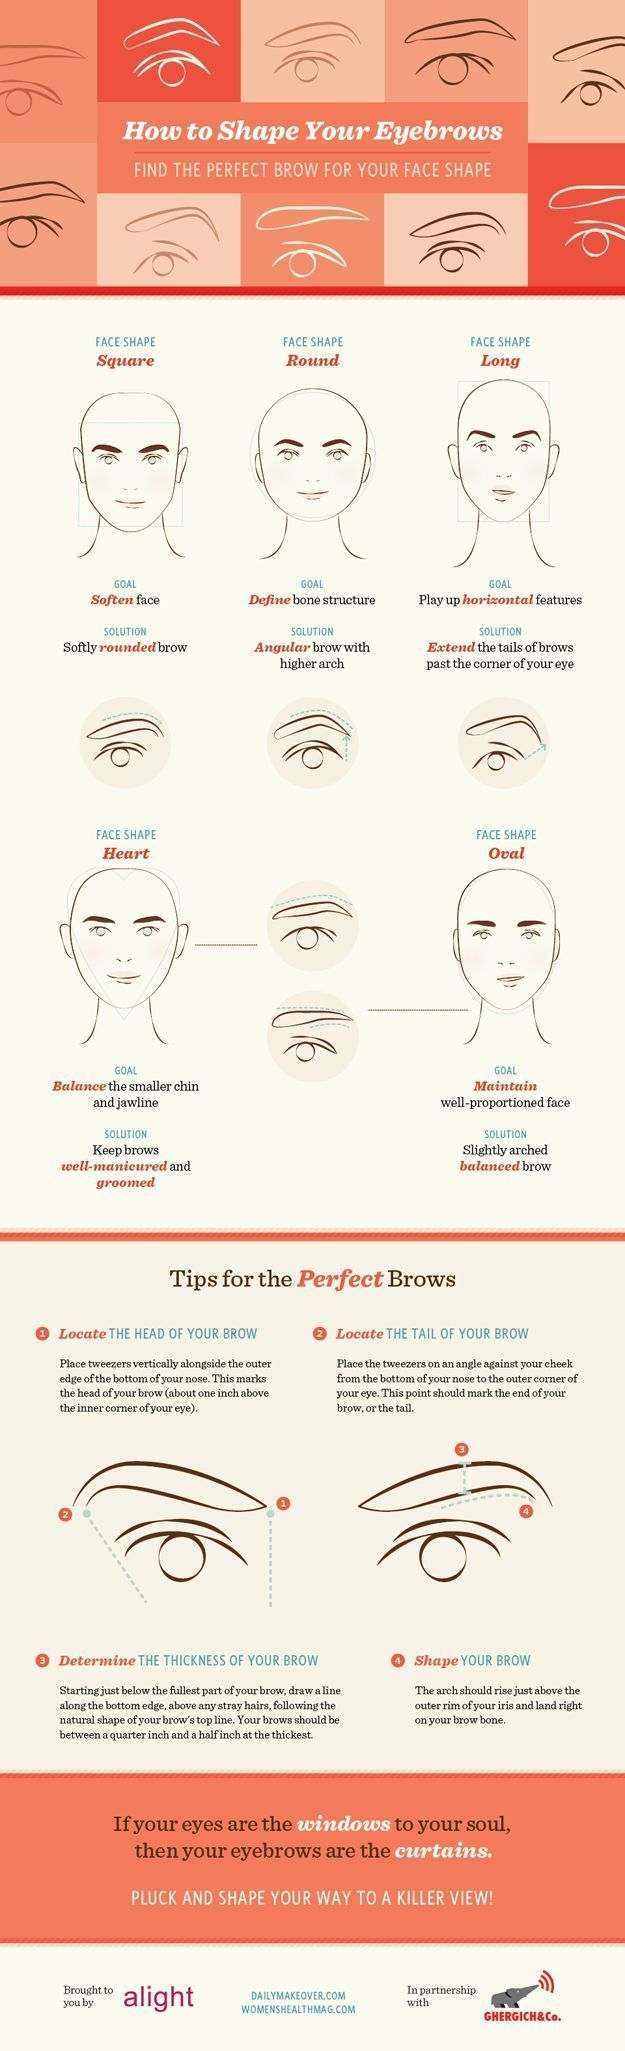 Best Brows for Your Face Shape | Eyebrow Shaping Tutorial - DIY Eyebrow Plucking Tips by Makeup Tutorials at makeuptutorials.c...